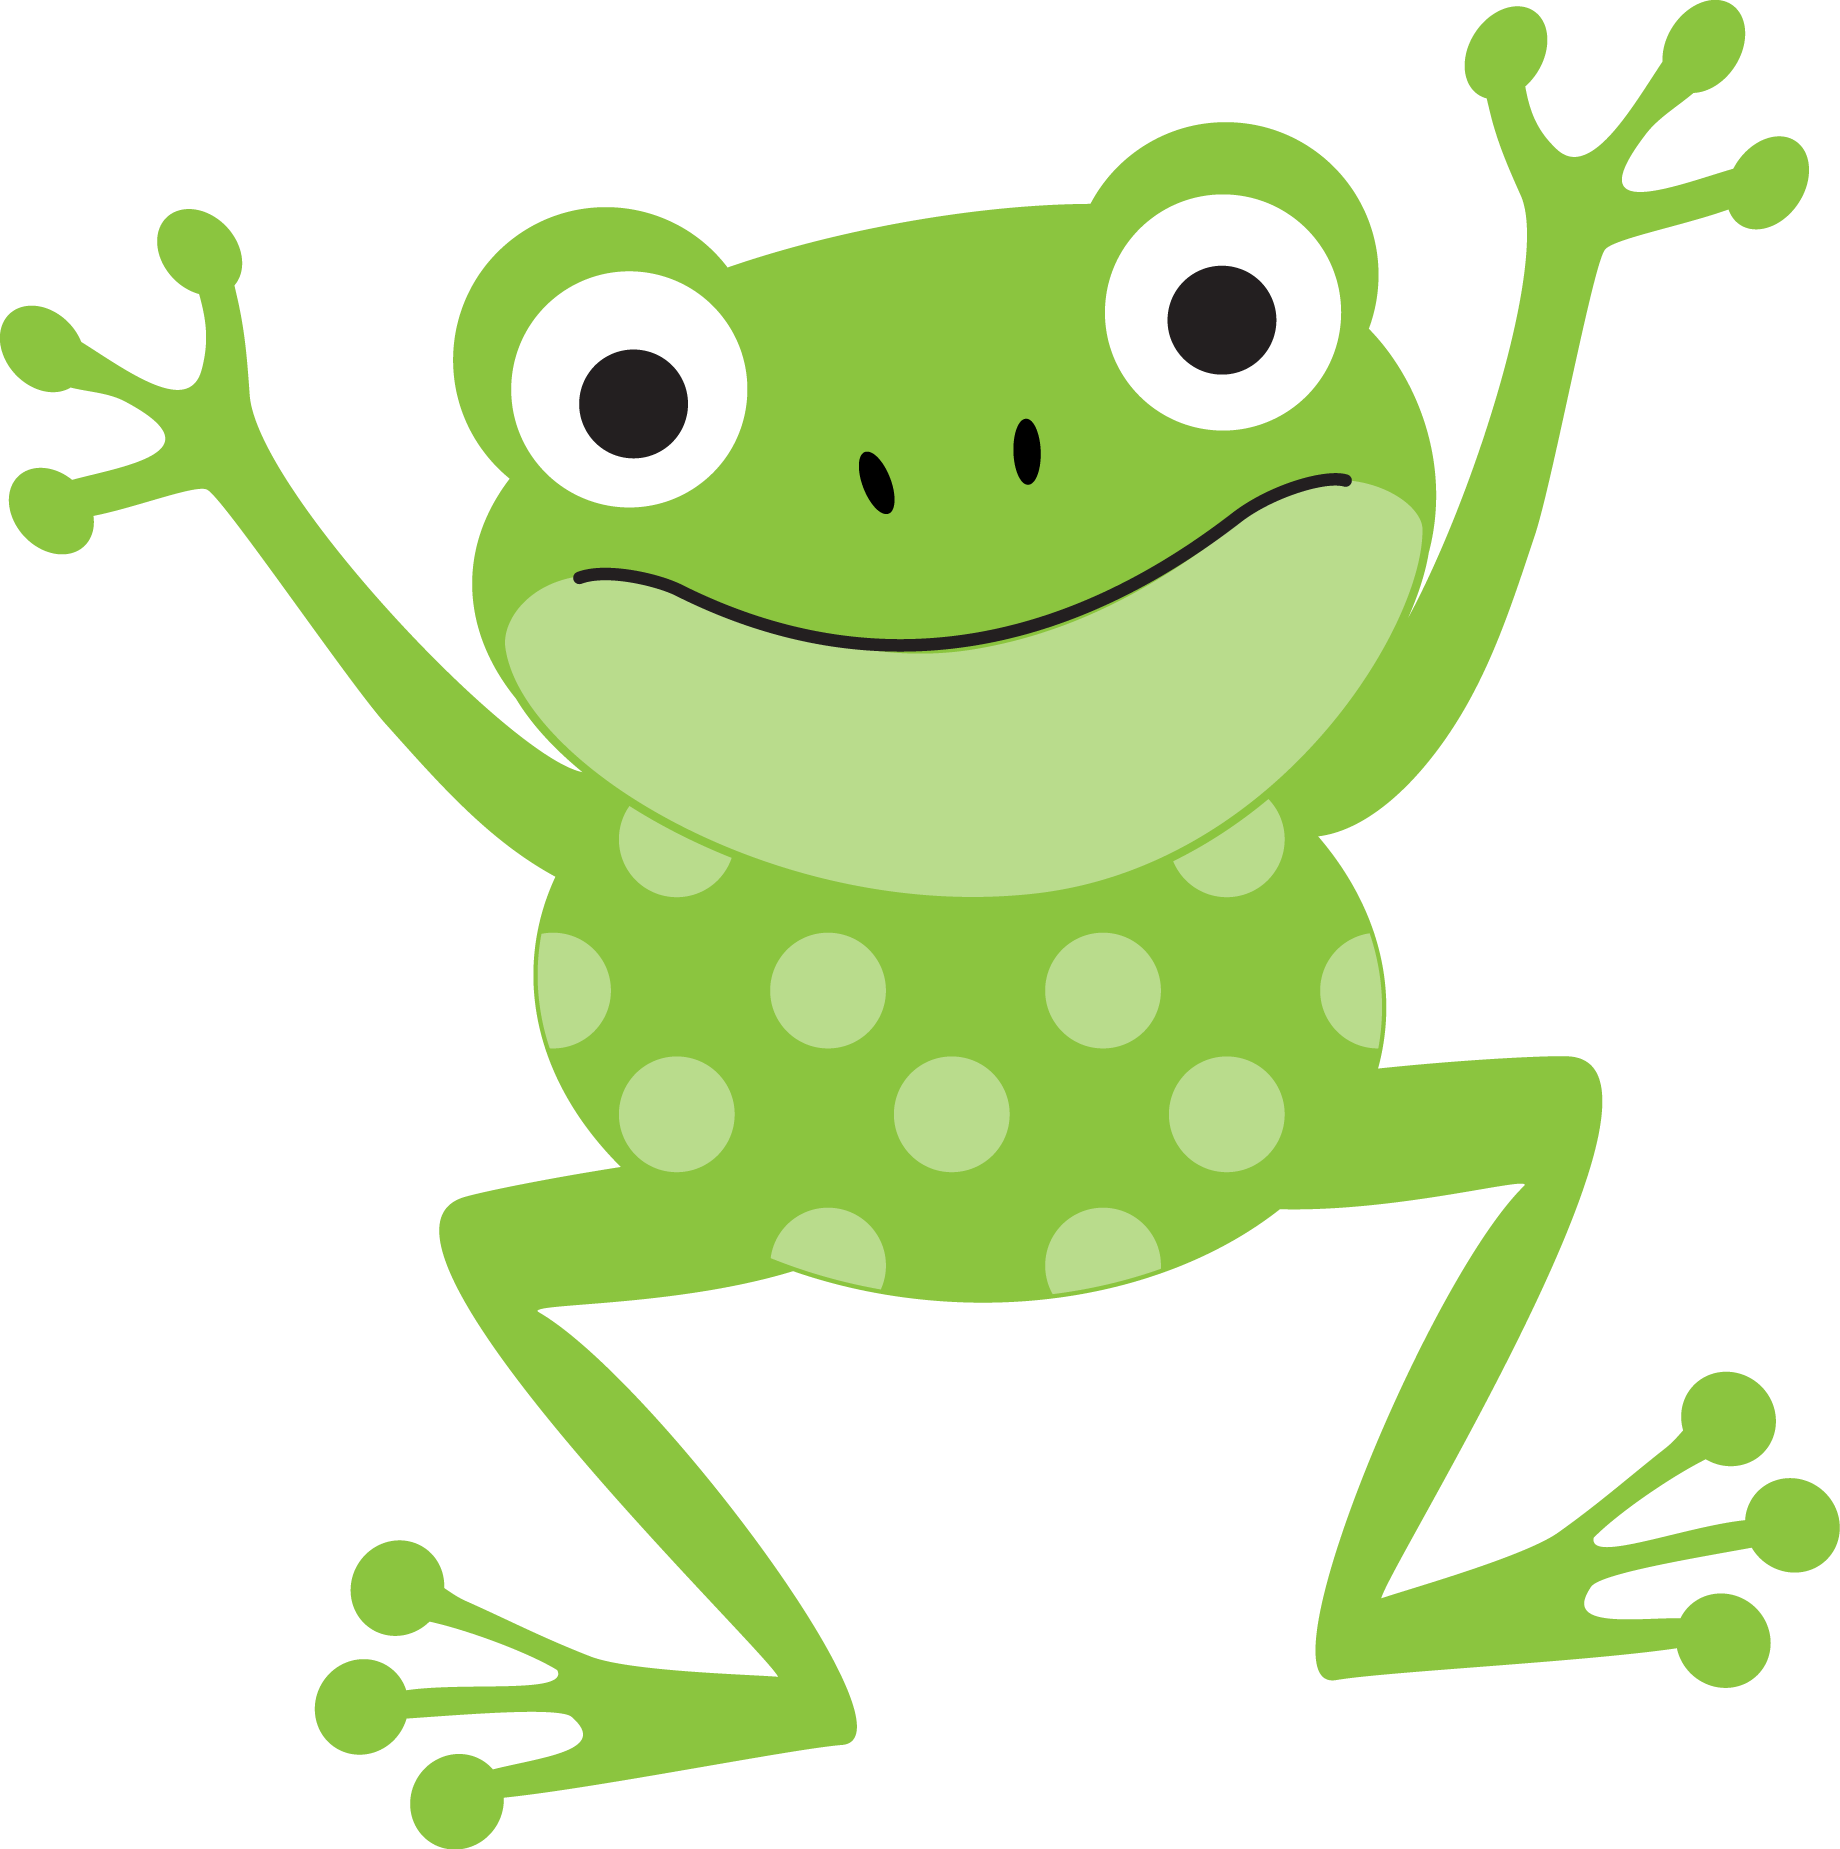 frogs clip art. Excited clipart ng tao